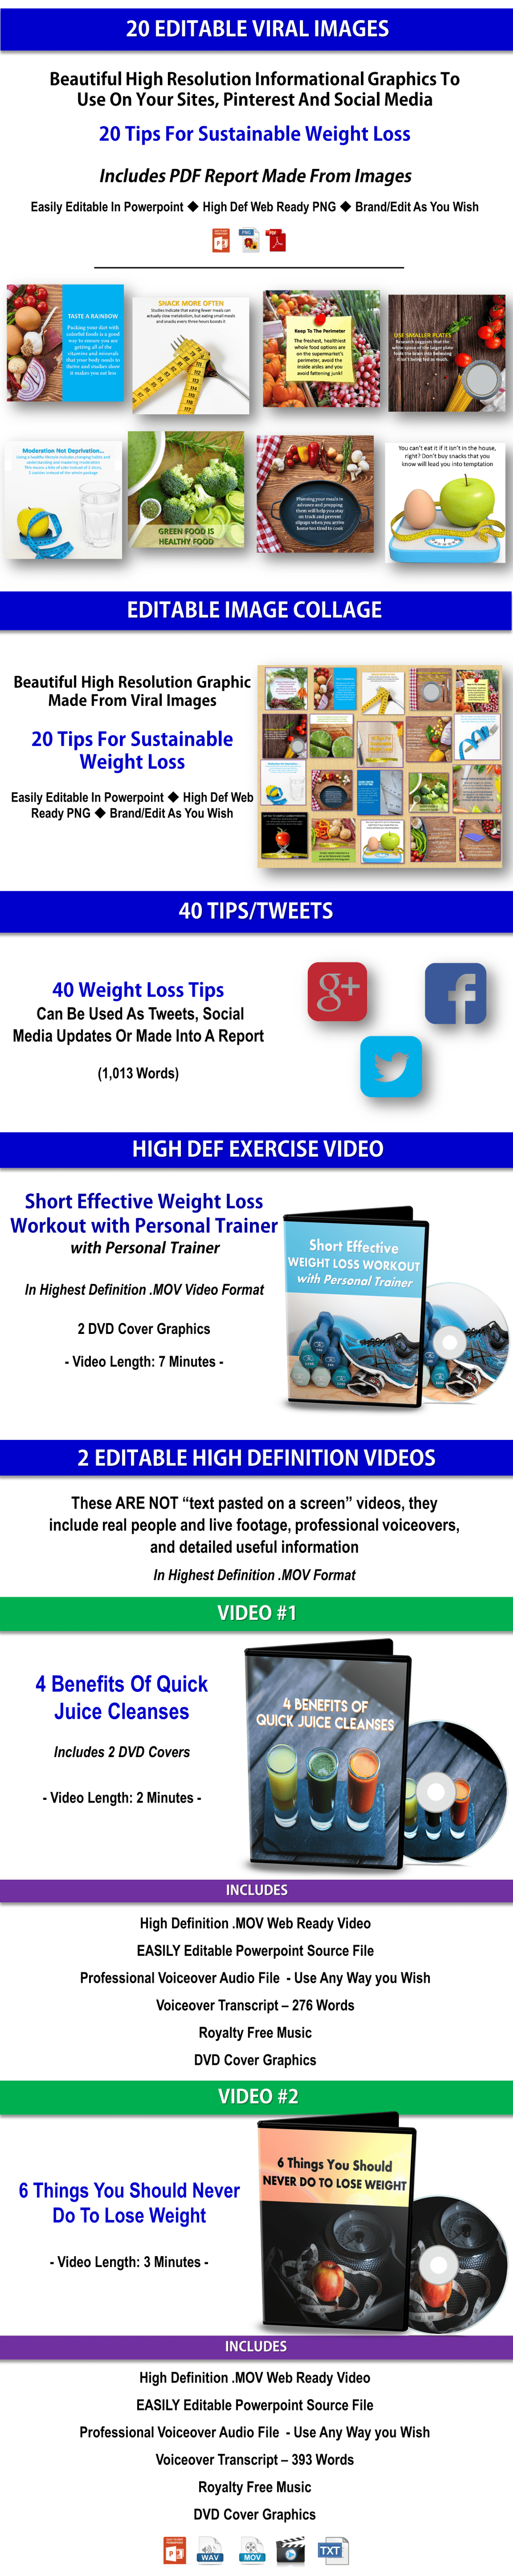 Detox, Weight Loss, Diet PLR